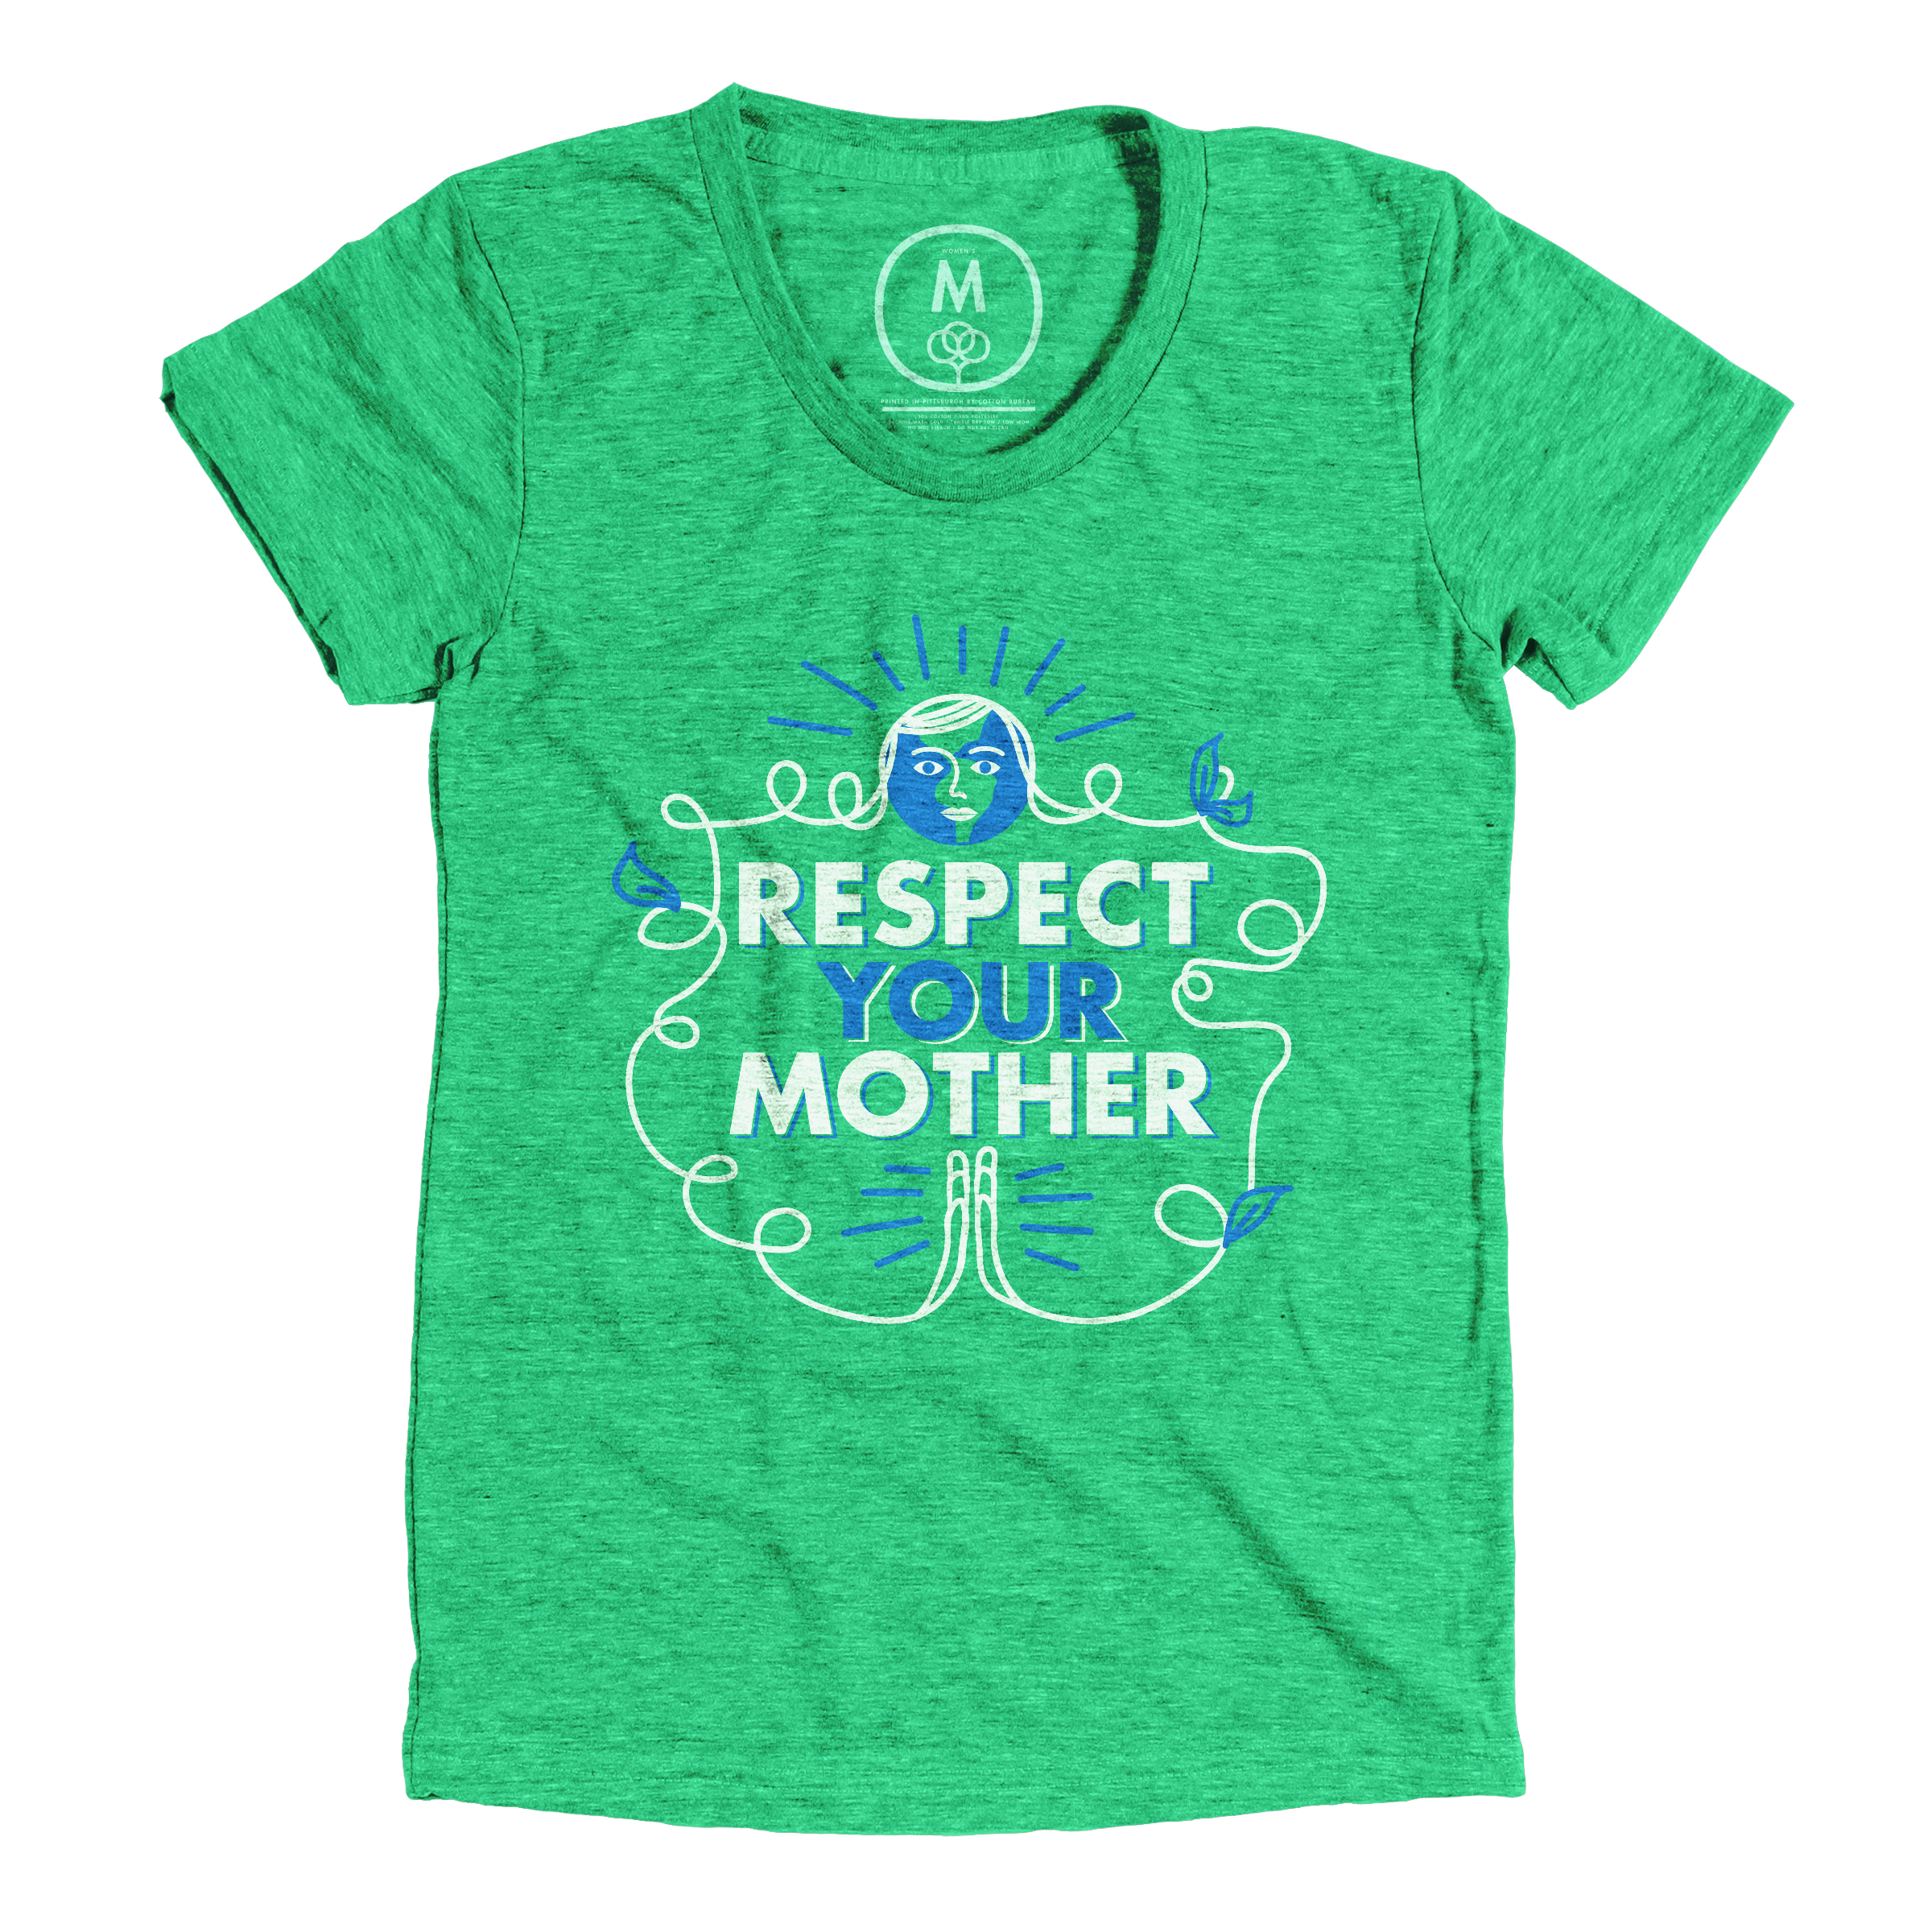 Respect Your Mother Envy (Women's)